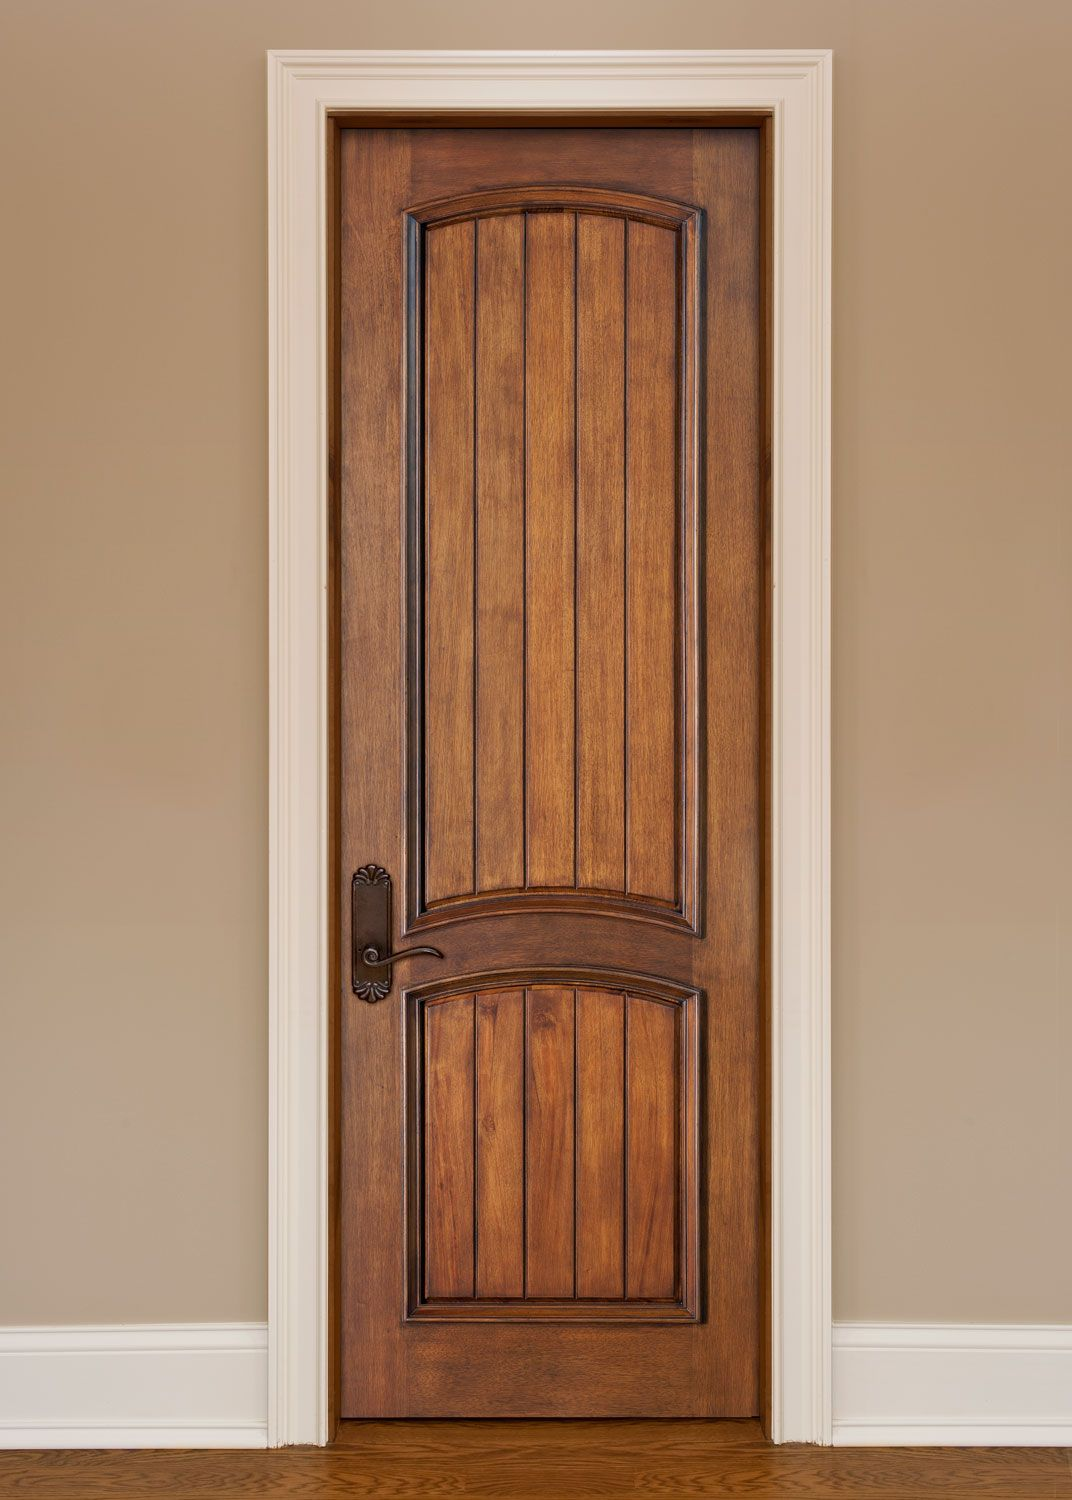 Superieur Interior Door Custom   Single   Solid Wood With GLH03 Custom Finish,  Artisan, Model DBI 2050VG